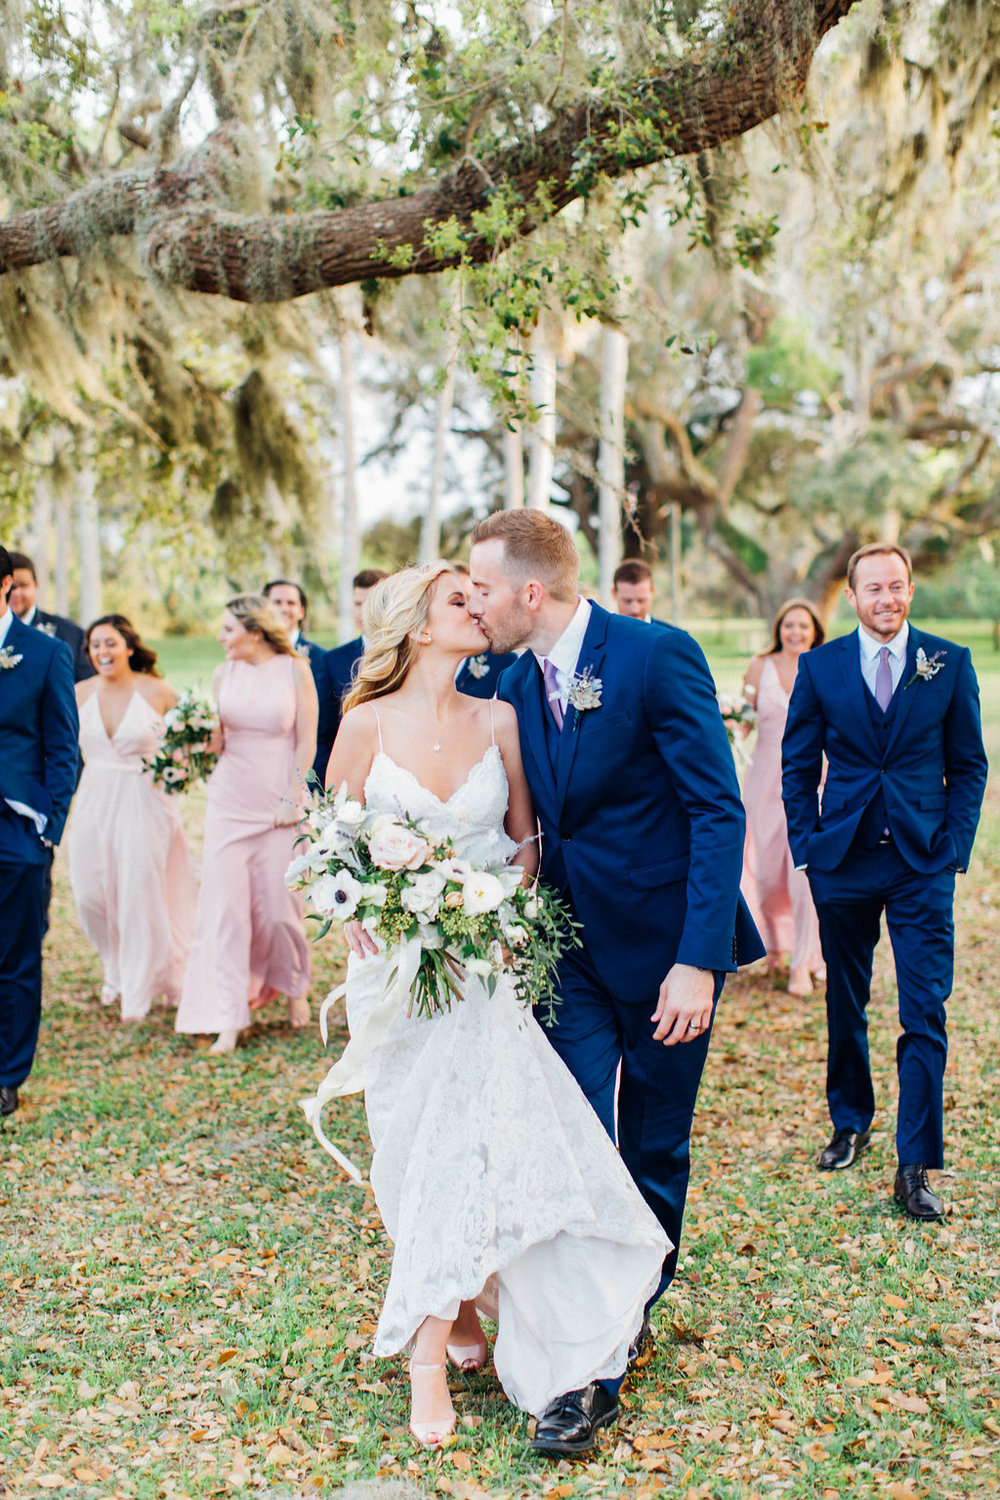 ivory-and-beau-bridal-boutique-christina-karst-photography-the-ribault-club-jacksonville-florida-wedding-jacksonville-wedding-planner-15.jpg